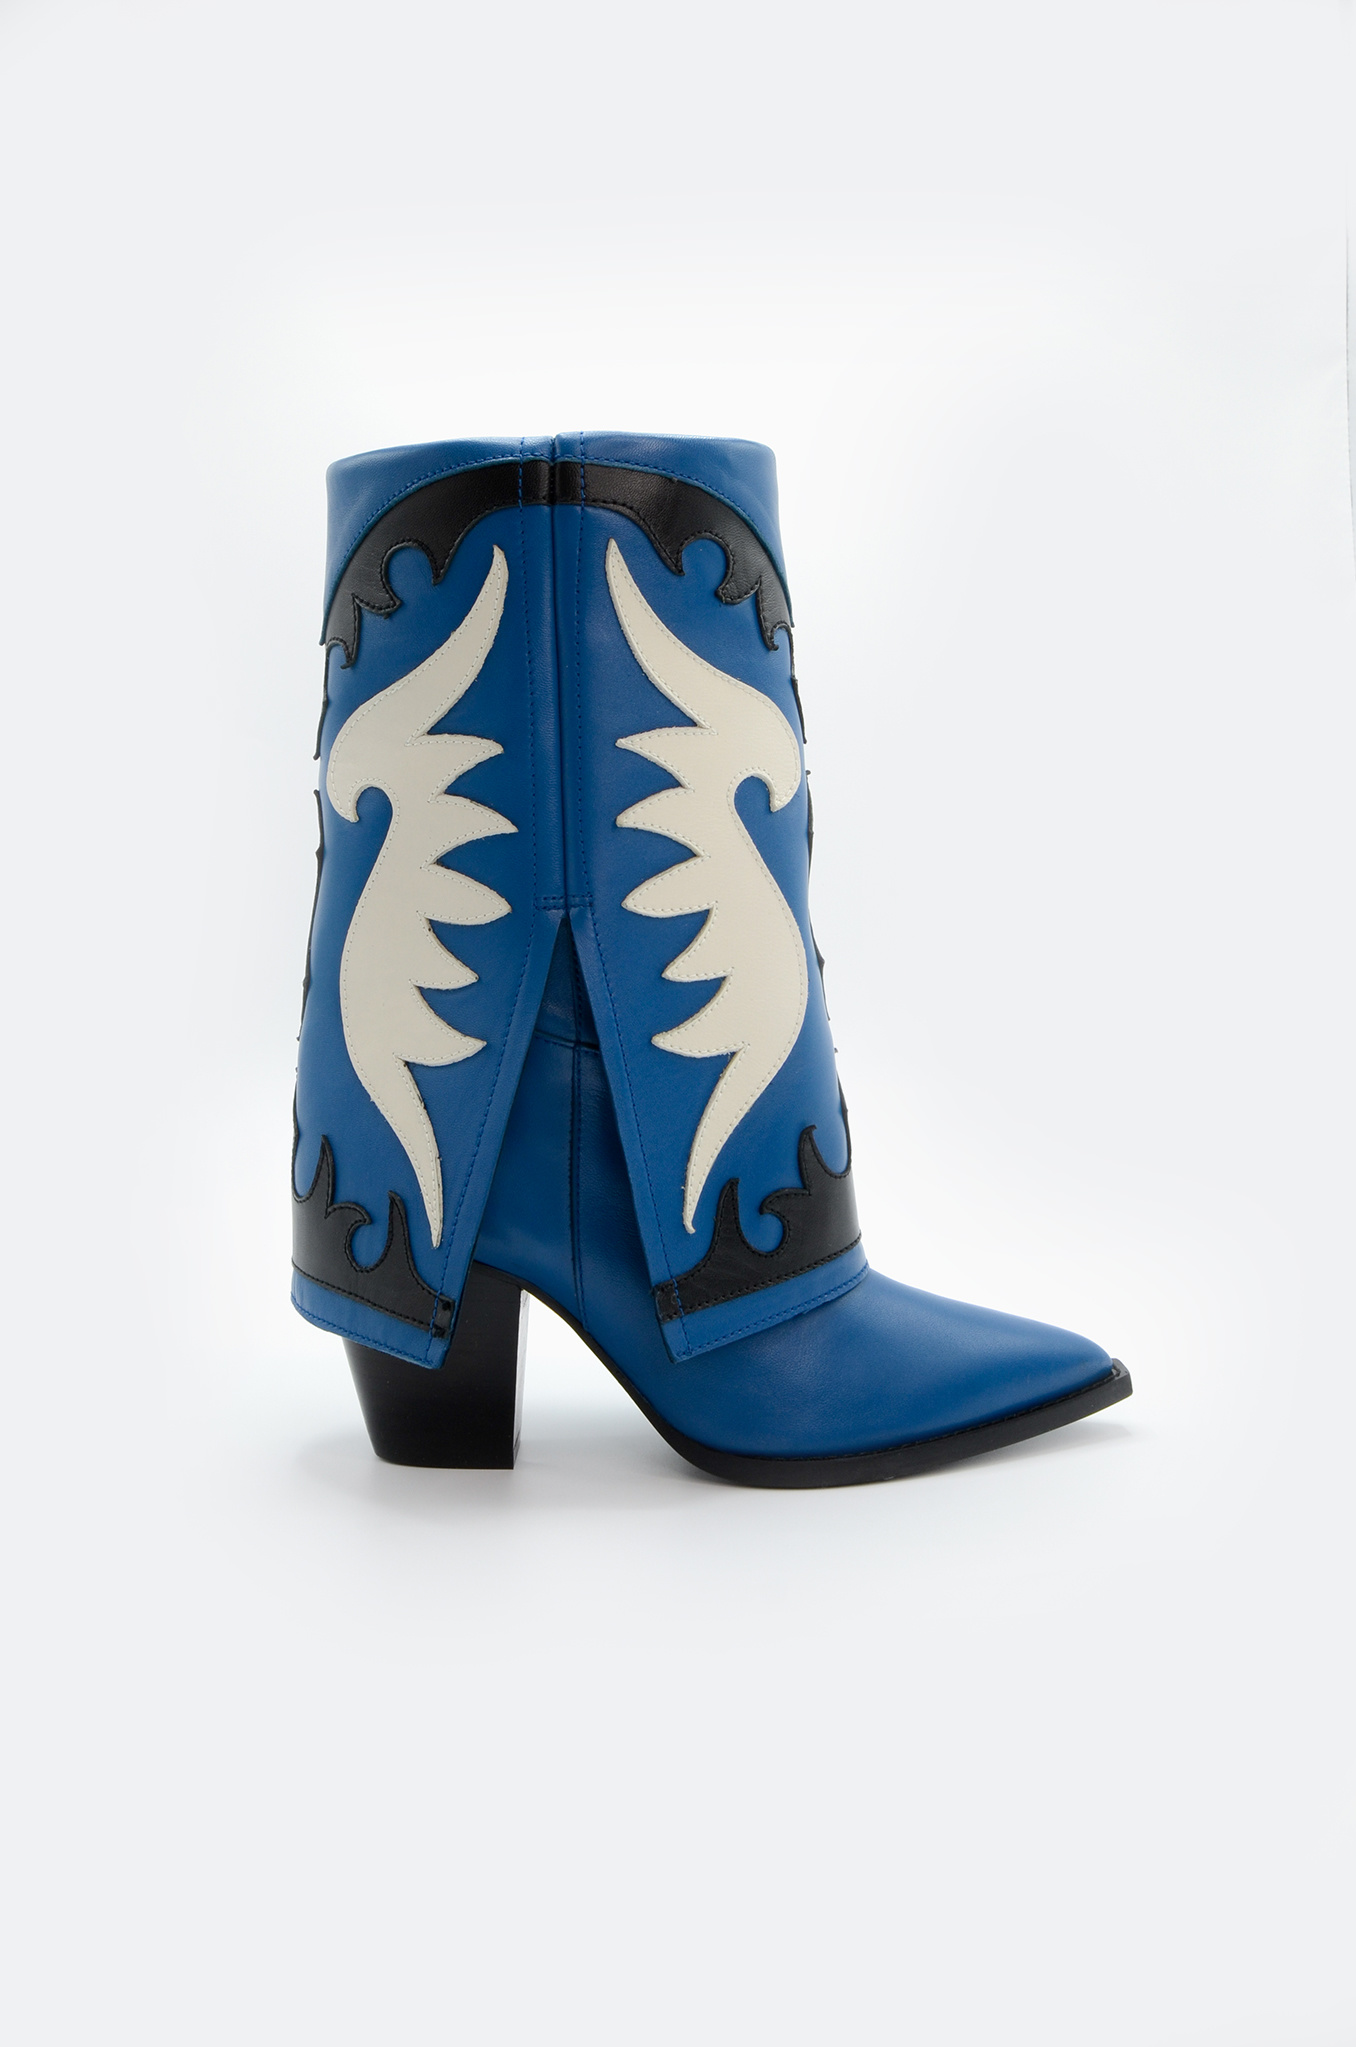 WESTERN STYLE BOOT IN BLUE-1